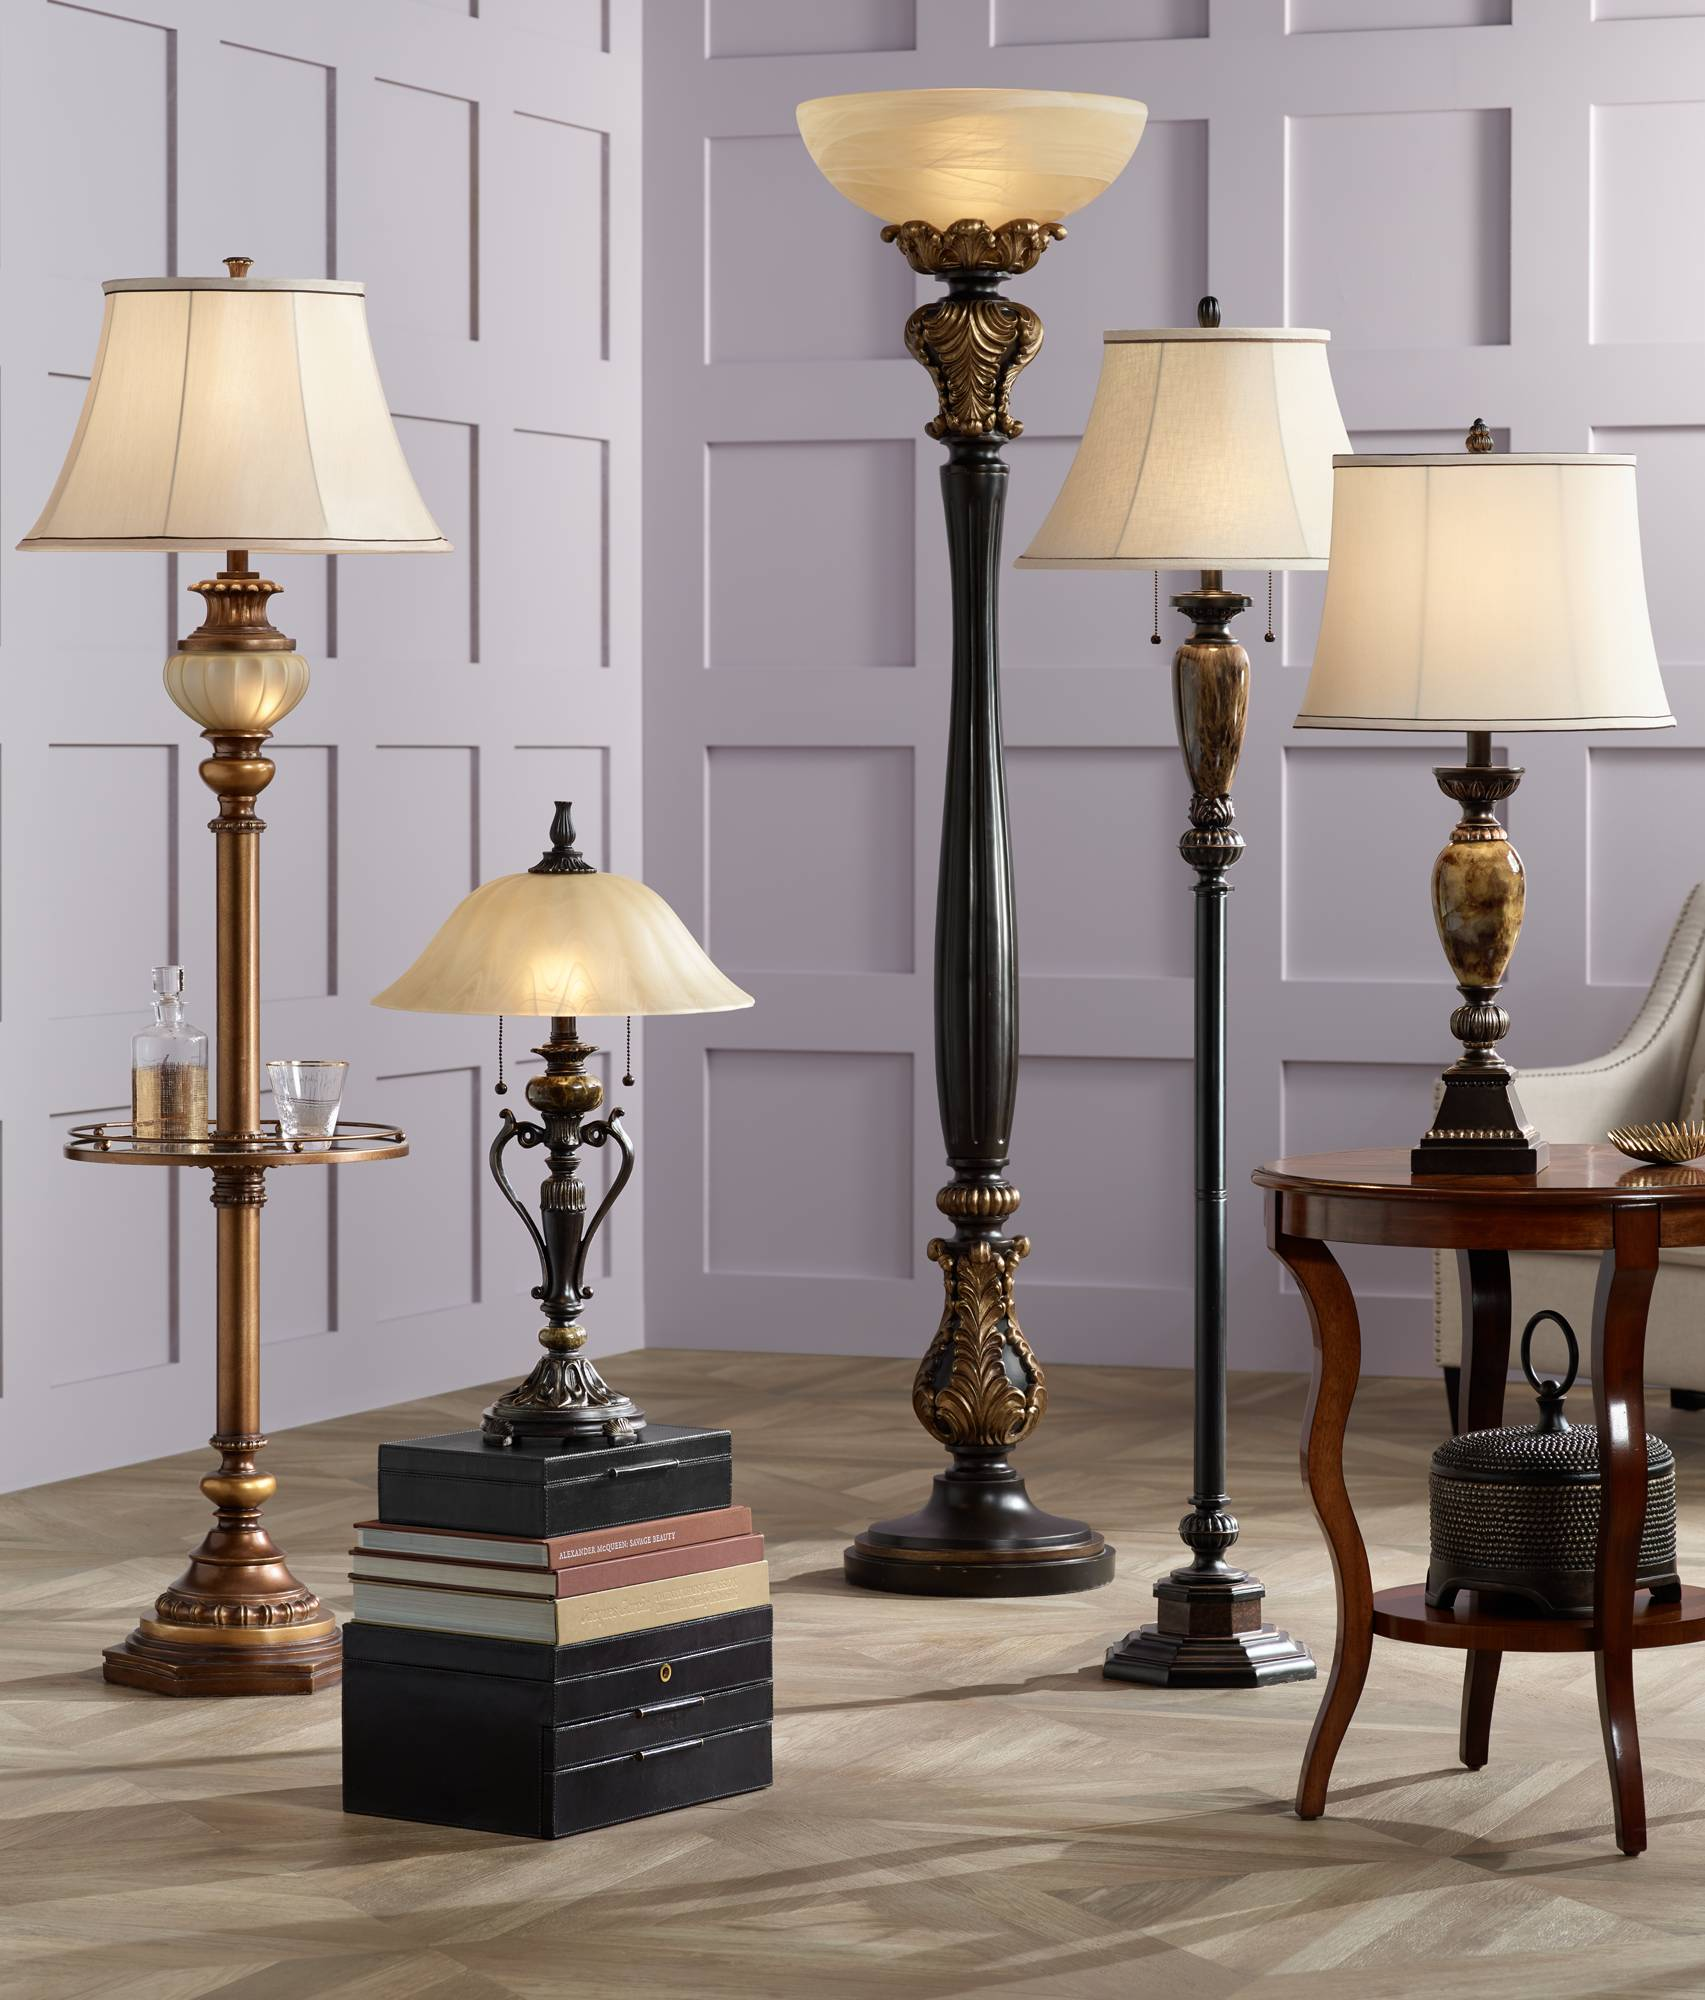 antique style bronze accent table lamp champagne glass shade twin traditional floor lamps plus tables pull chain modern sideboard contemporary metal mesh patio side white retro